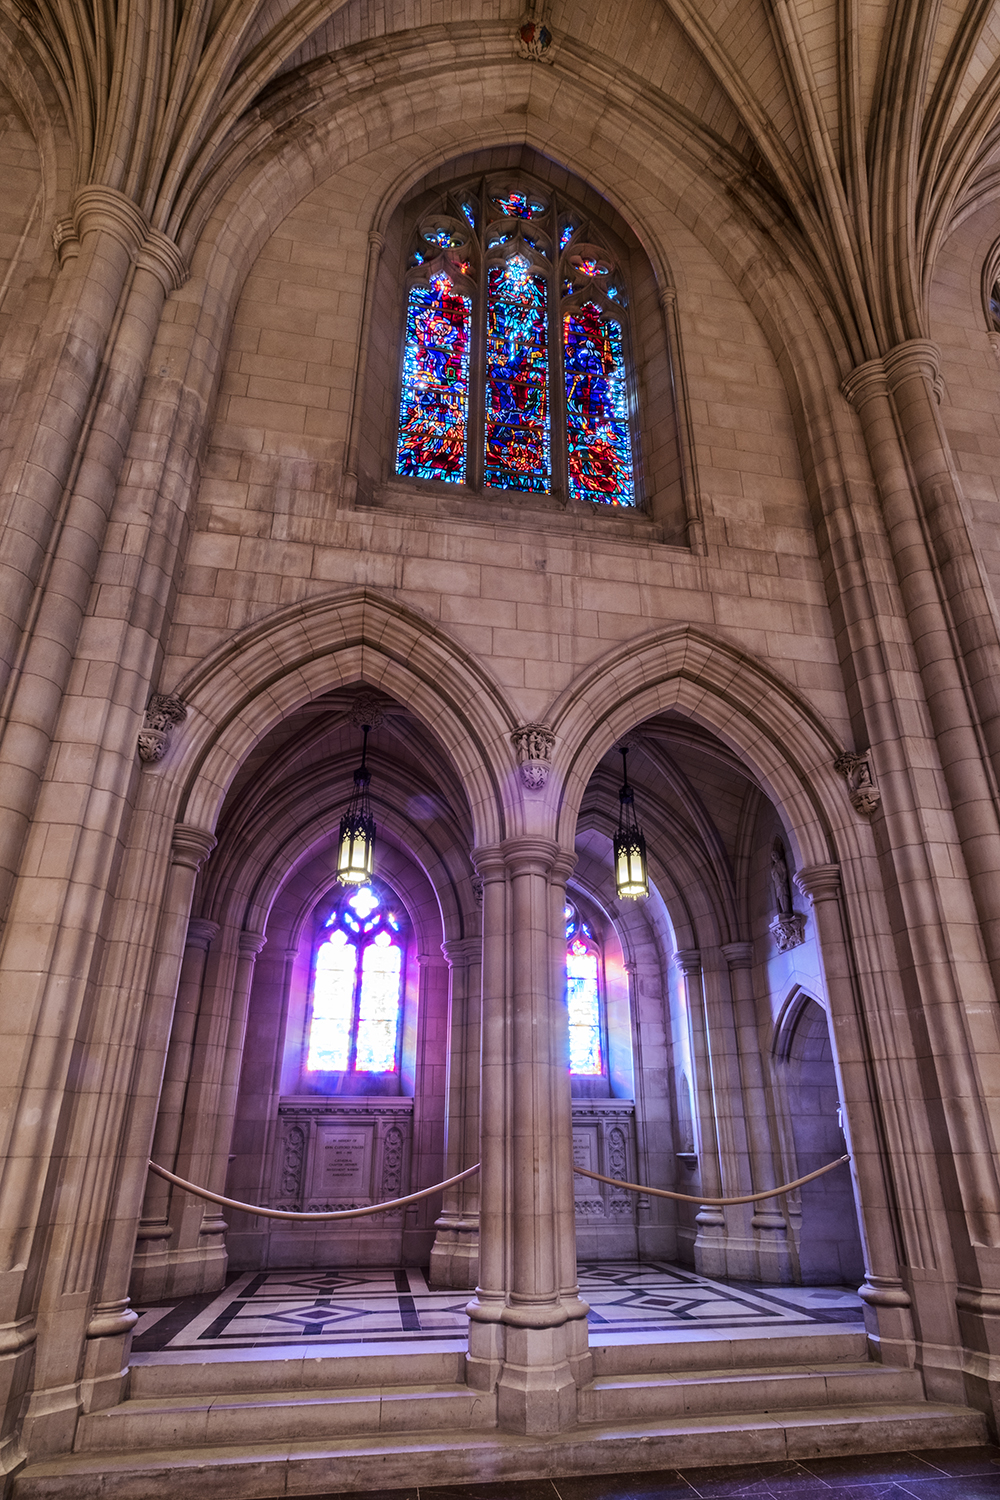 170216 Cathedral 040-1.jpg